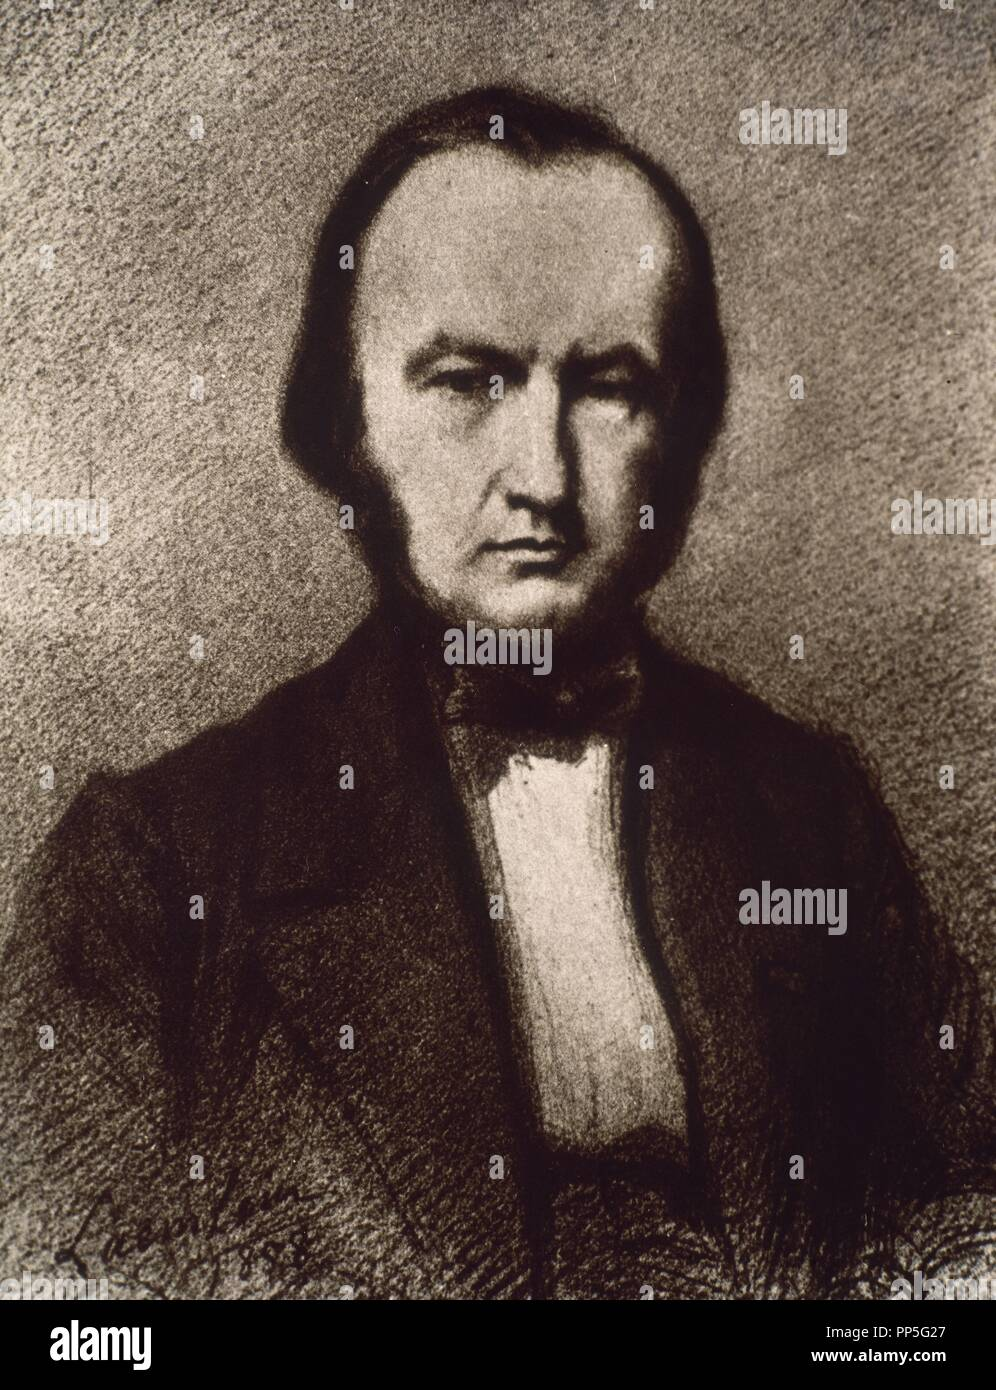 CLAUDE BERNARD (1813-1878) PHYSIOLOGIST WHO DISCOVERED THE CHEMICAL FUNCTIONS OF THE LIVER AND THE FUNCTIONING OF THE NERVOUS SYSTEM - 1889. - Stock Image